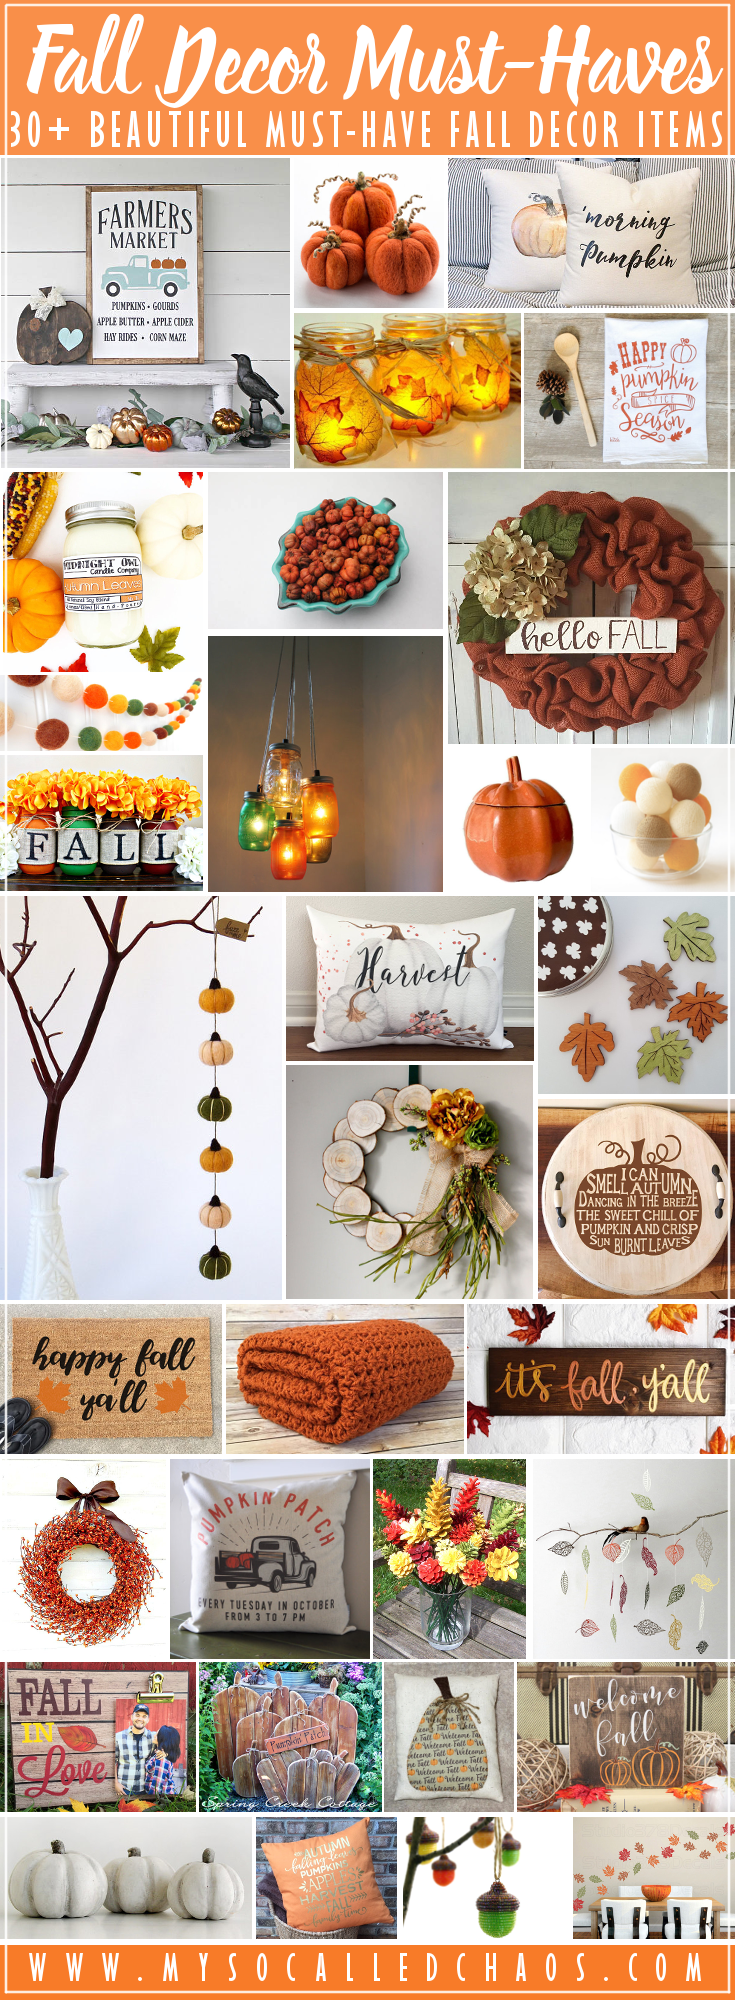 30+ Fall Decor Must-Haves - Gorgeous Autumn decorations that are sure to make your house feel like Fall. Enjoy pumpkins, pillows, garlands, leaves, and other fall-themed handmade goodies that will make your heart happy.